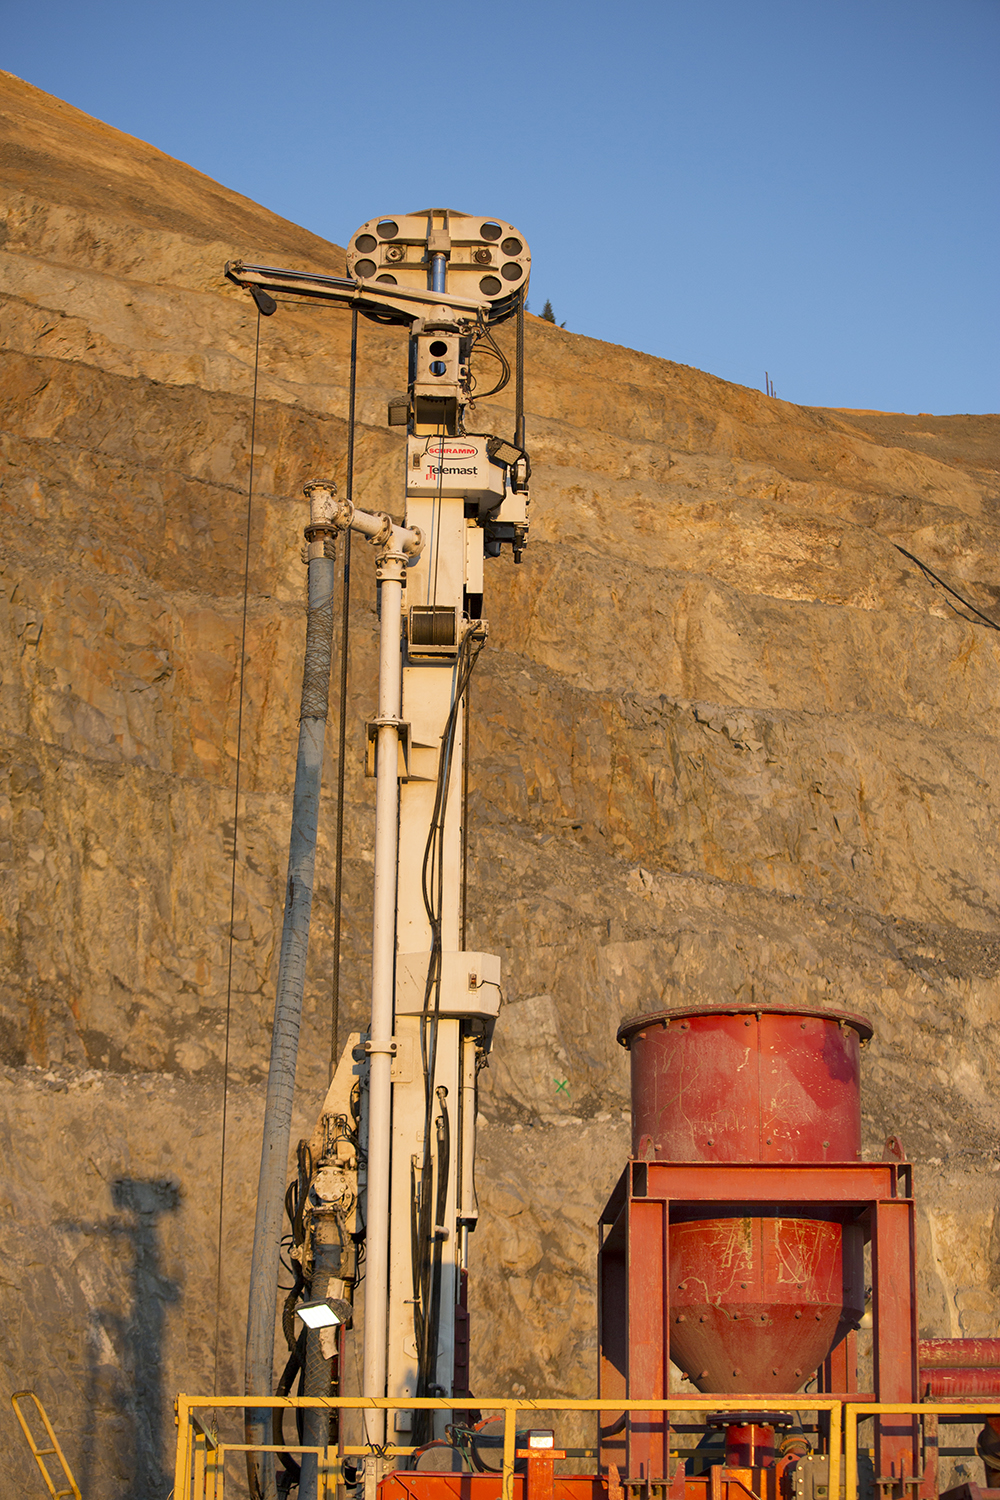 National_Kennecott_0396.jpg